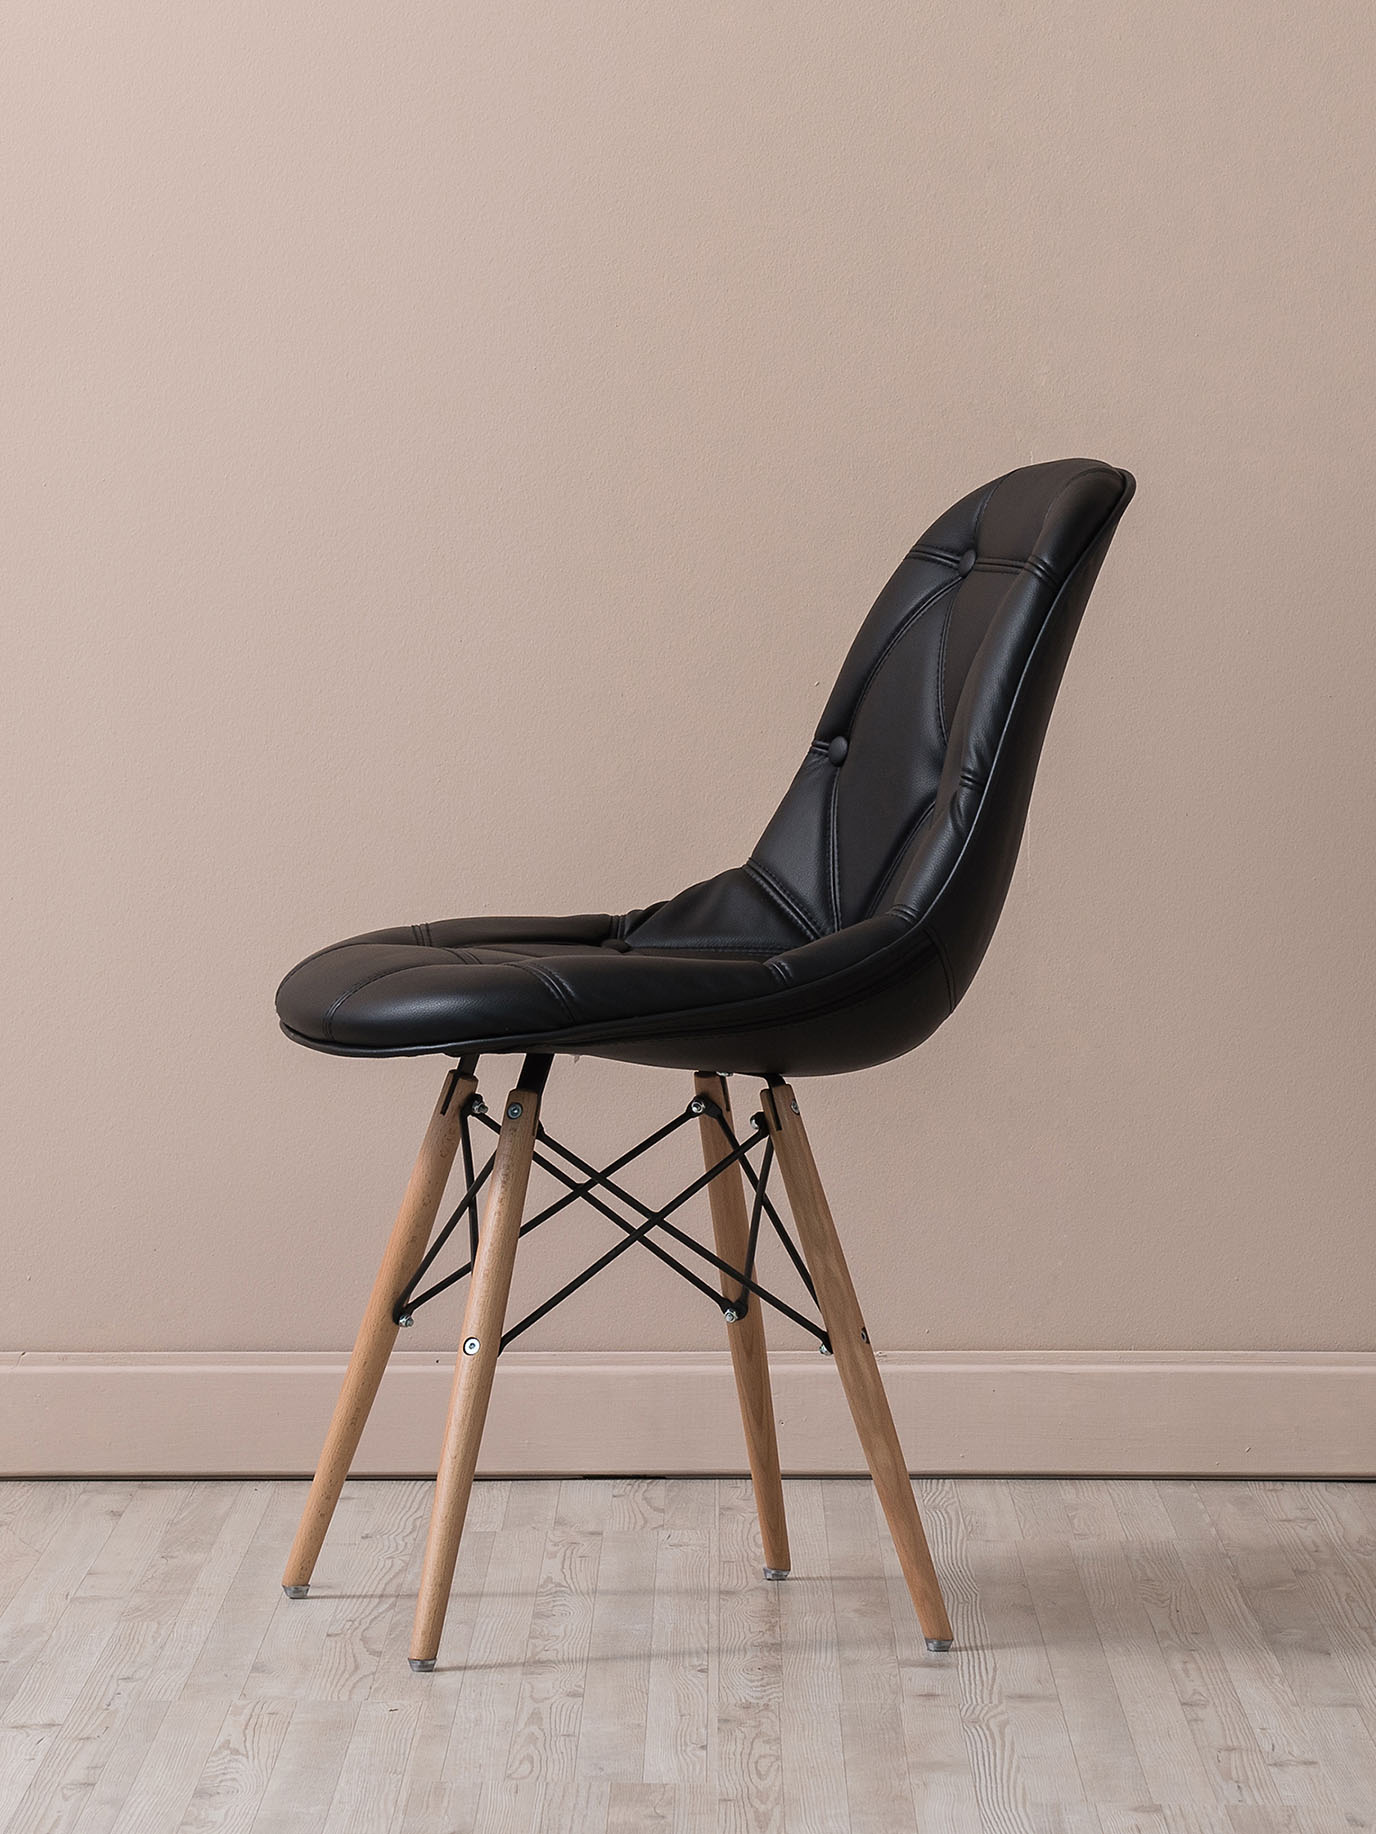 one-profile-chair-1.jpg